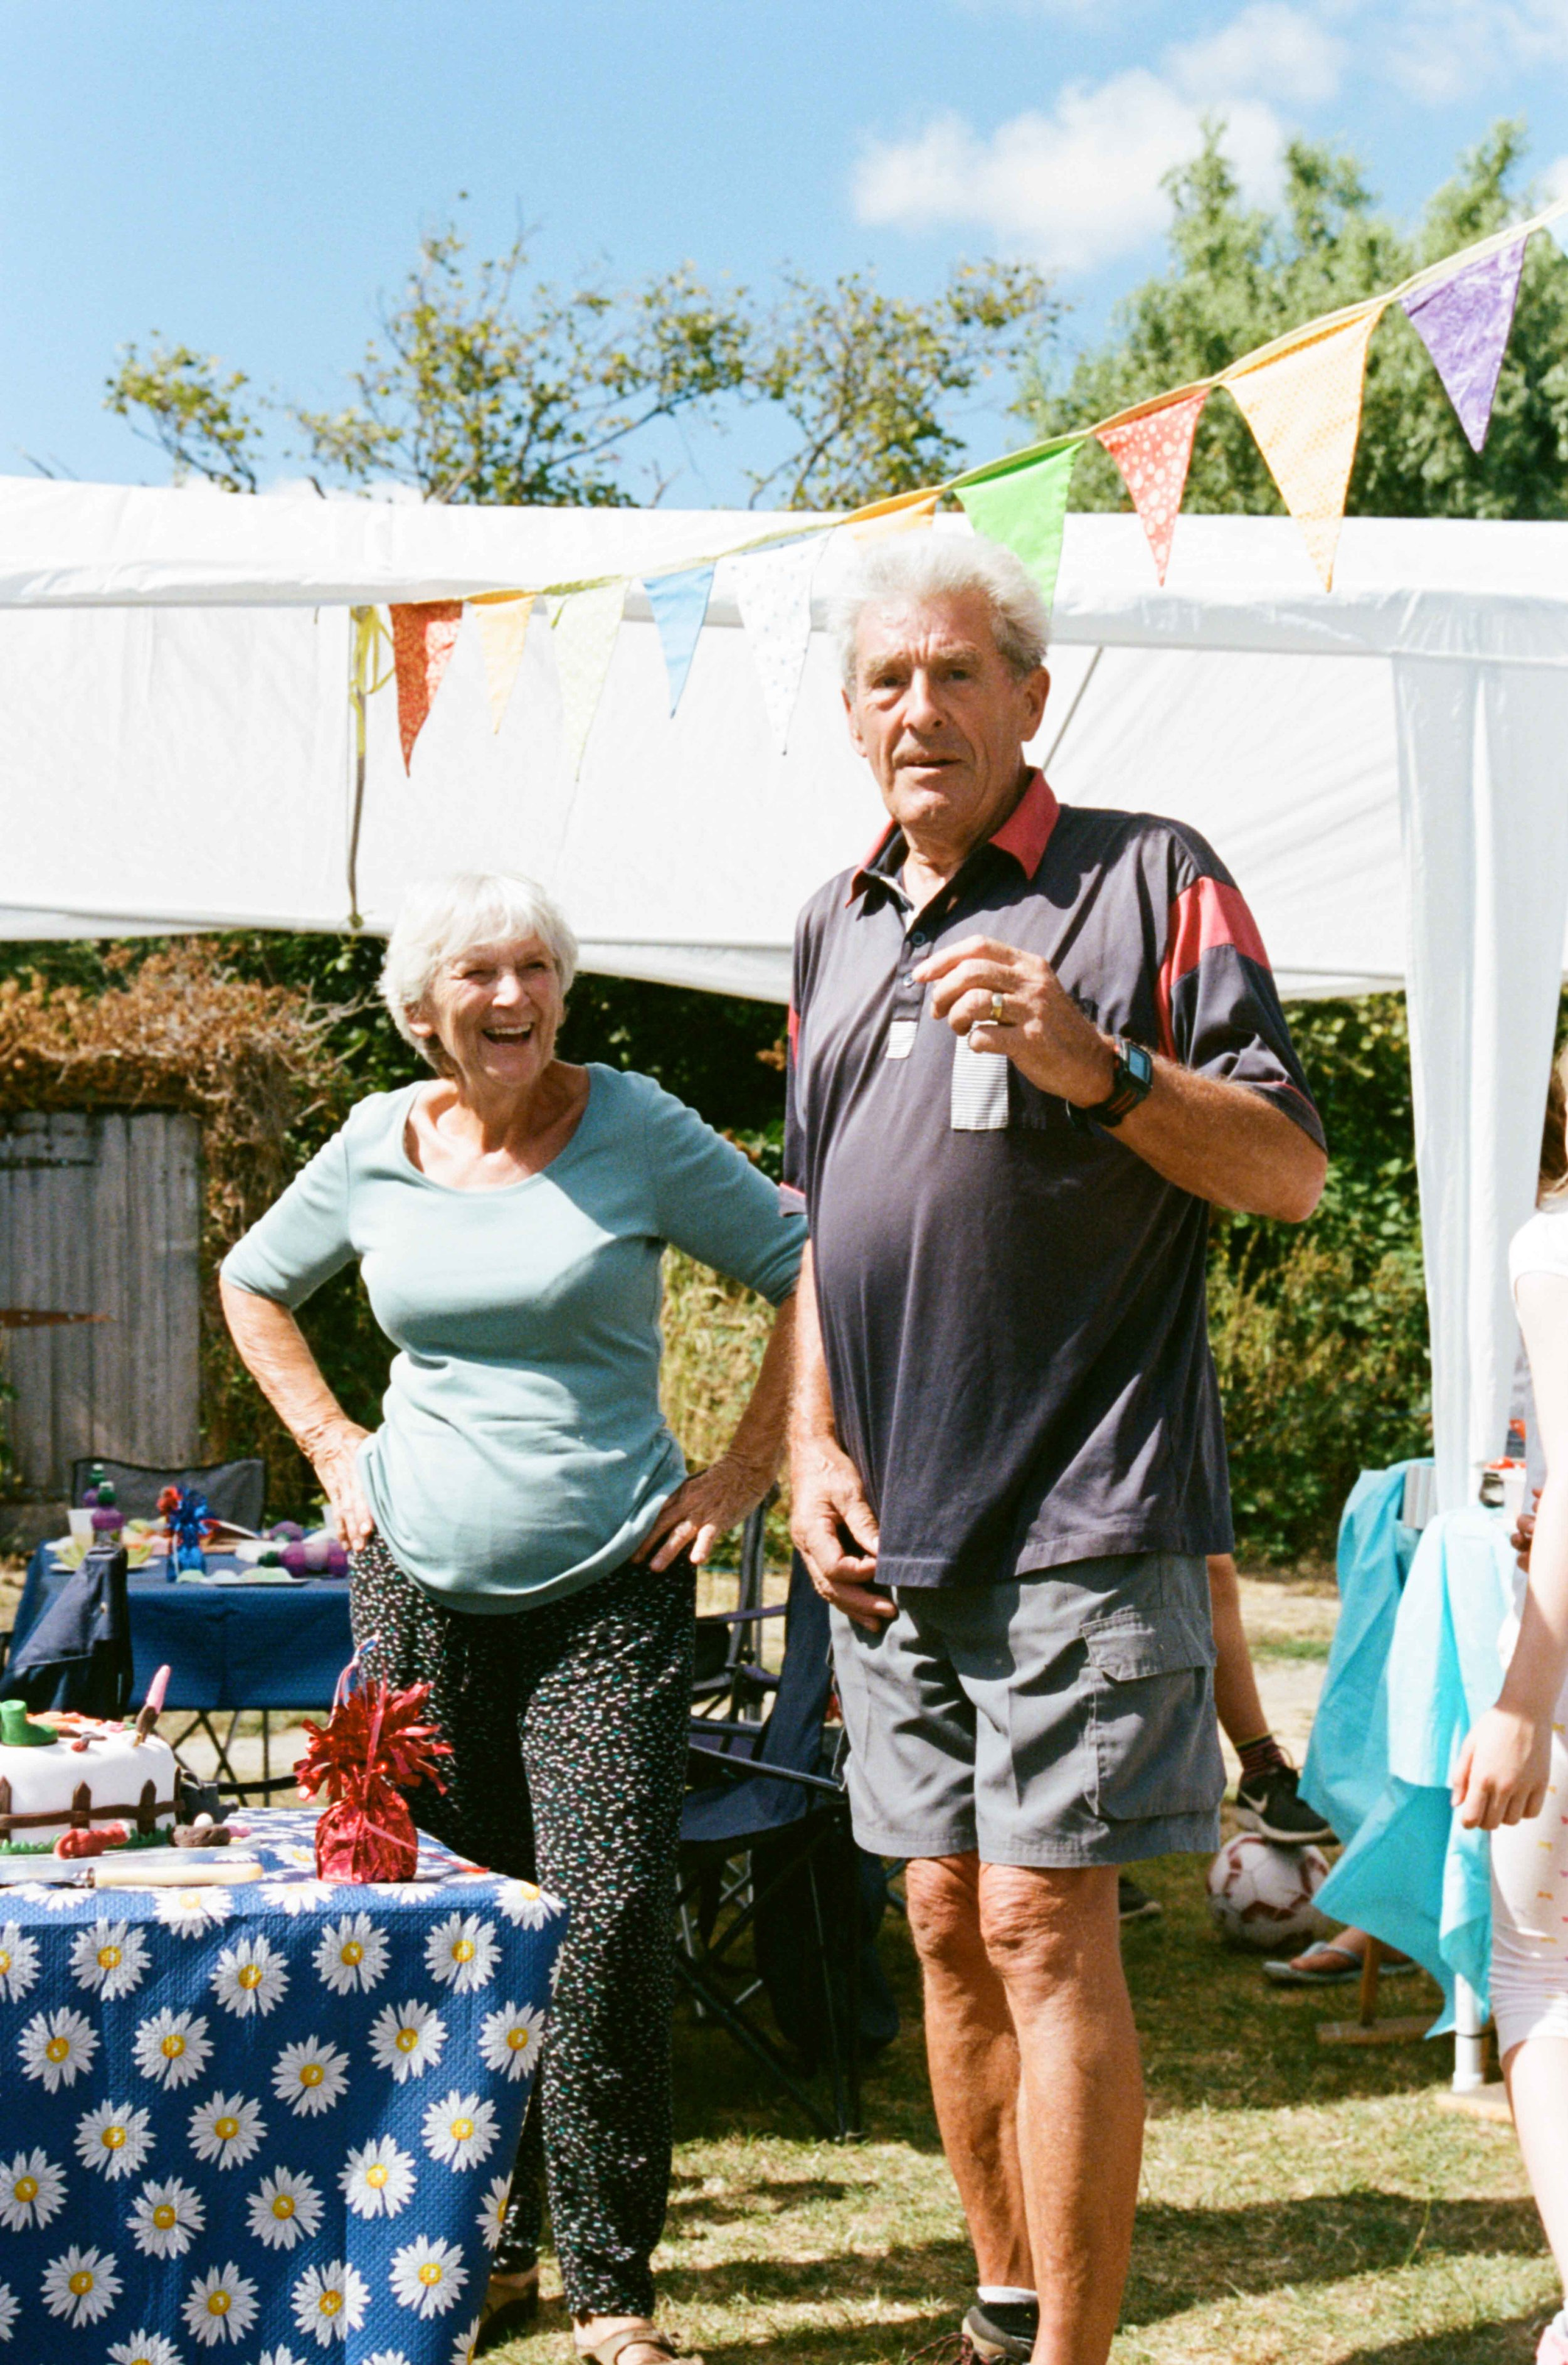 allotmentsfinals (61 of 98).jpg